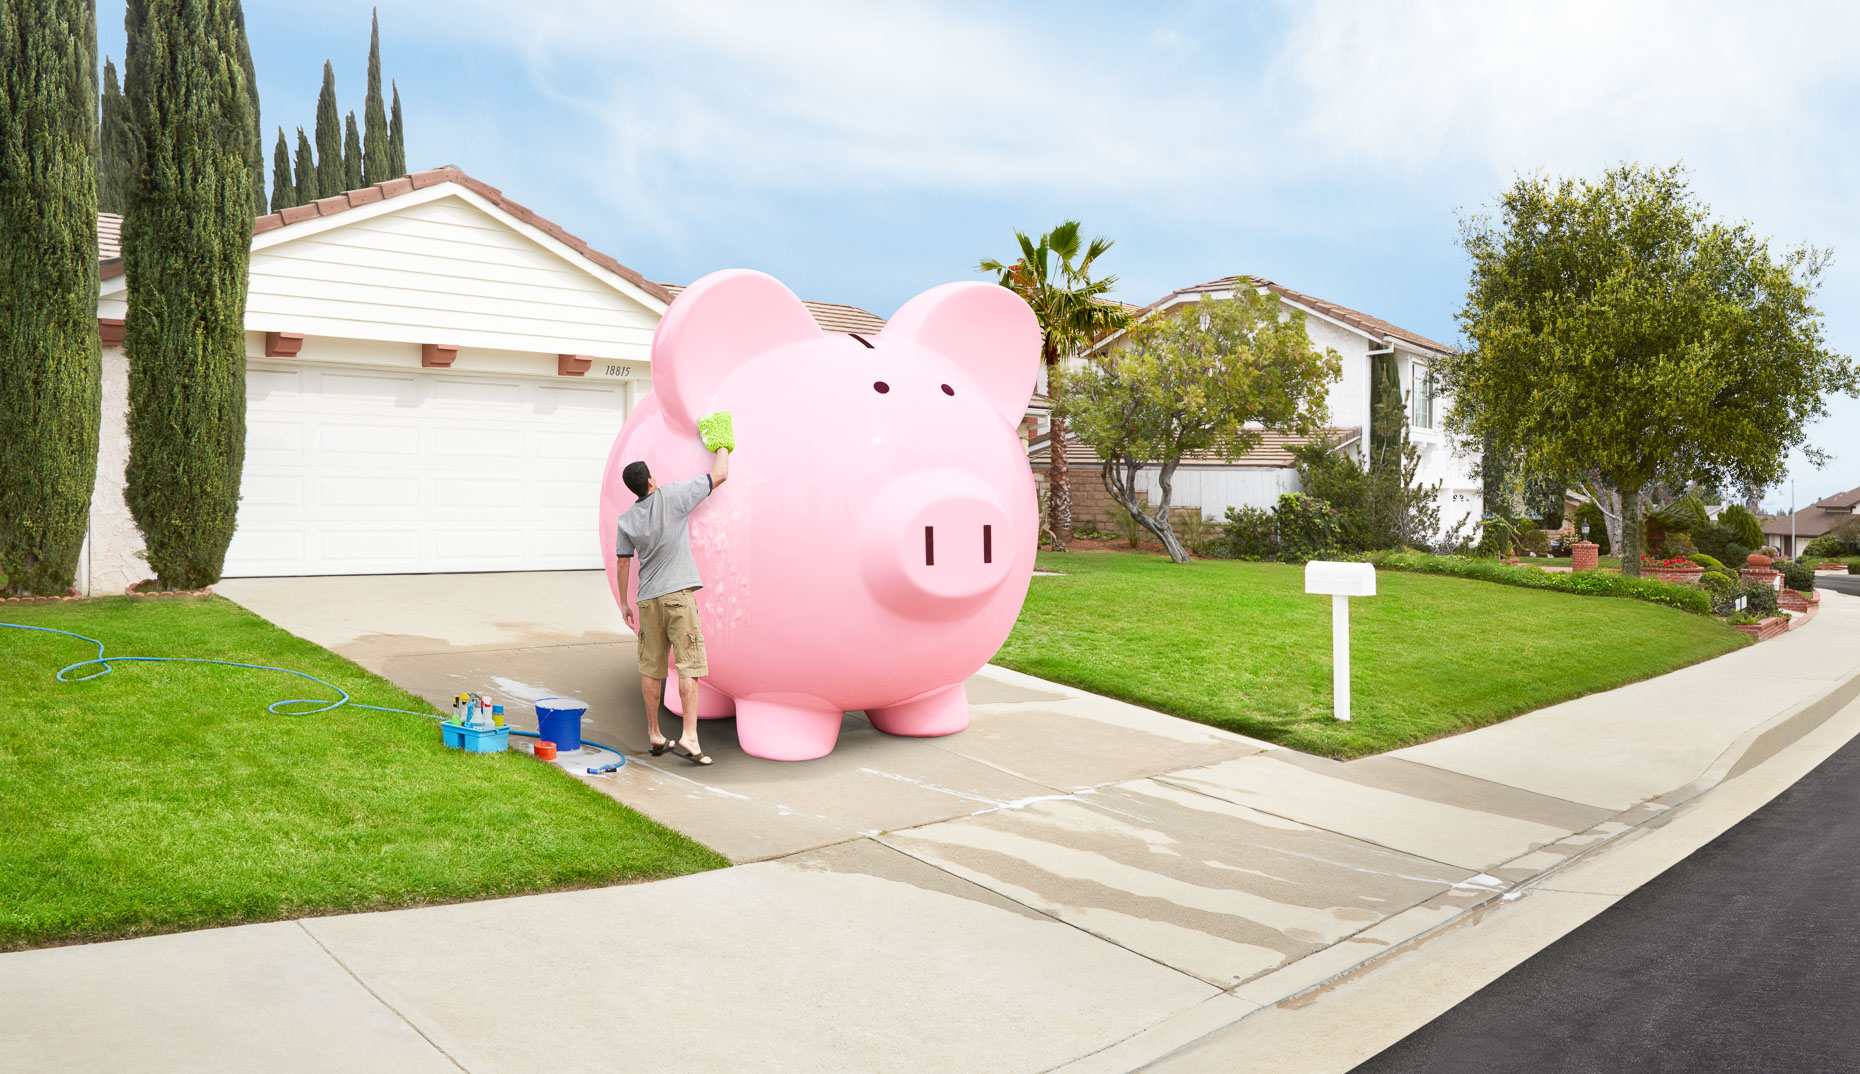 Man washing huge pink piggy bank in driveway of house. David Zaitz.